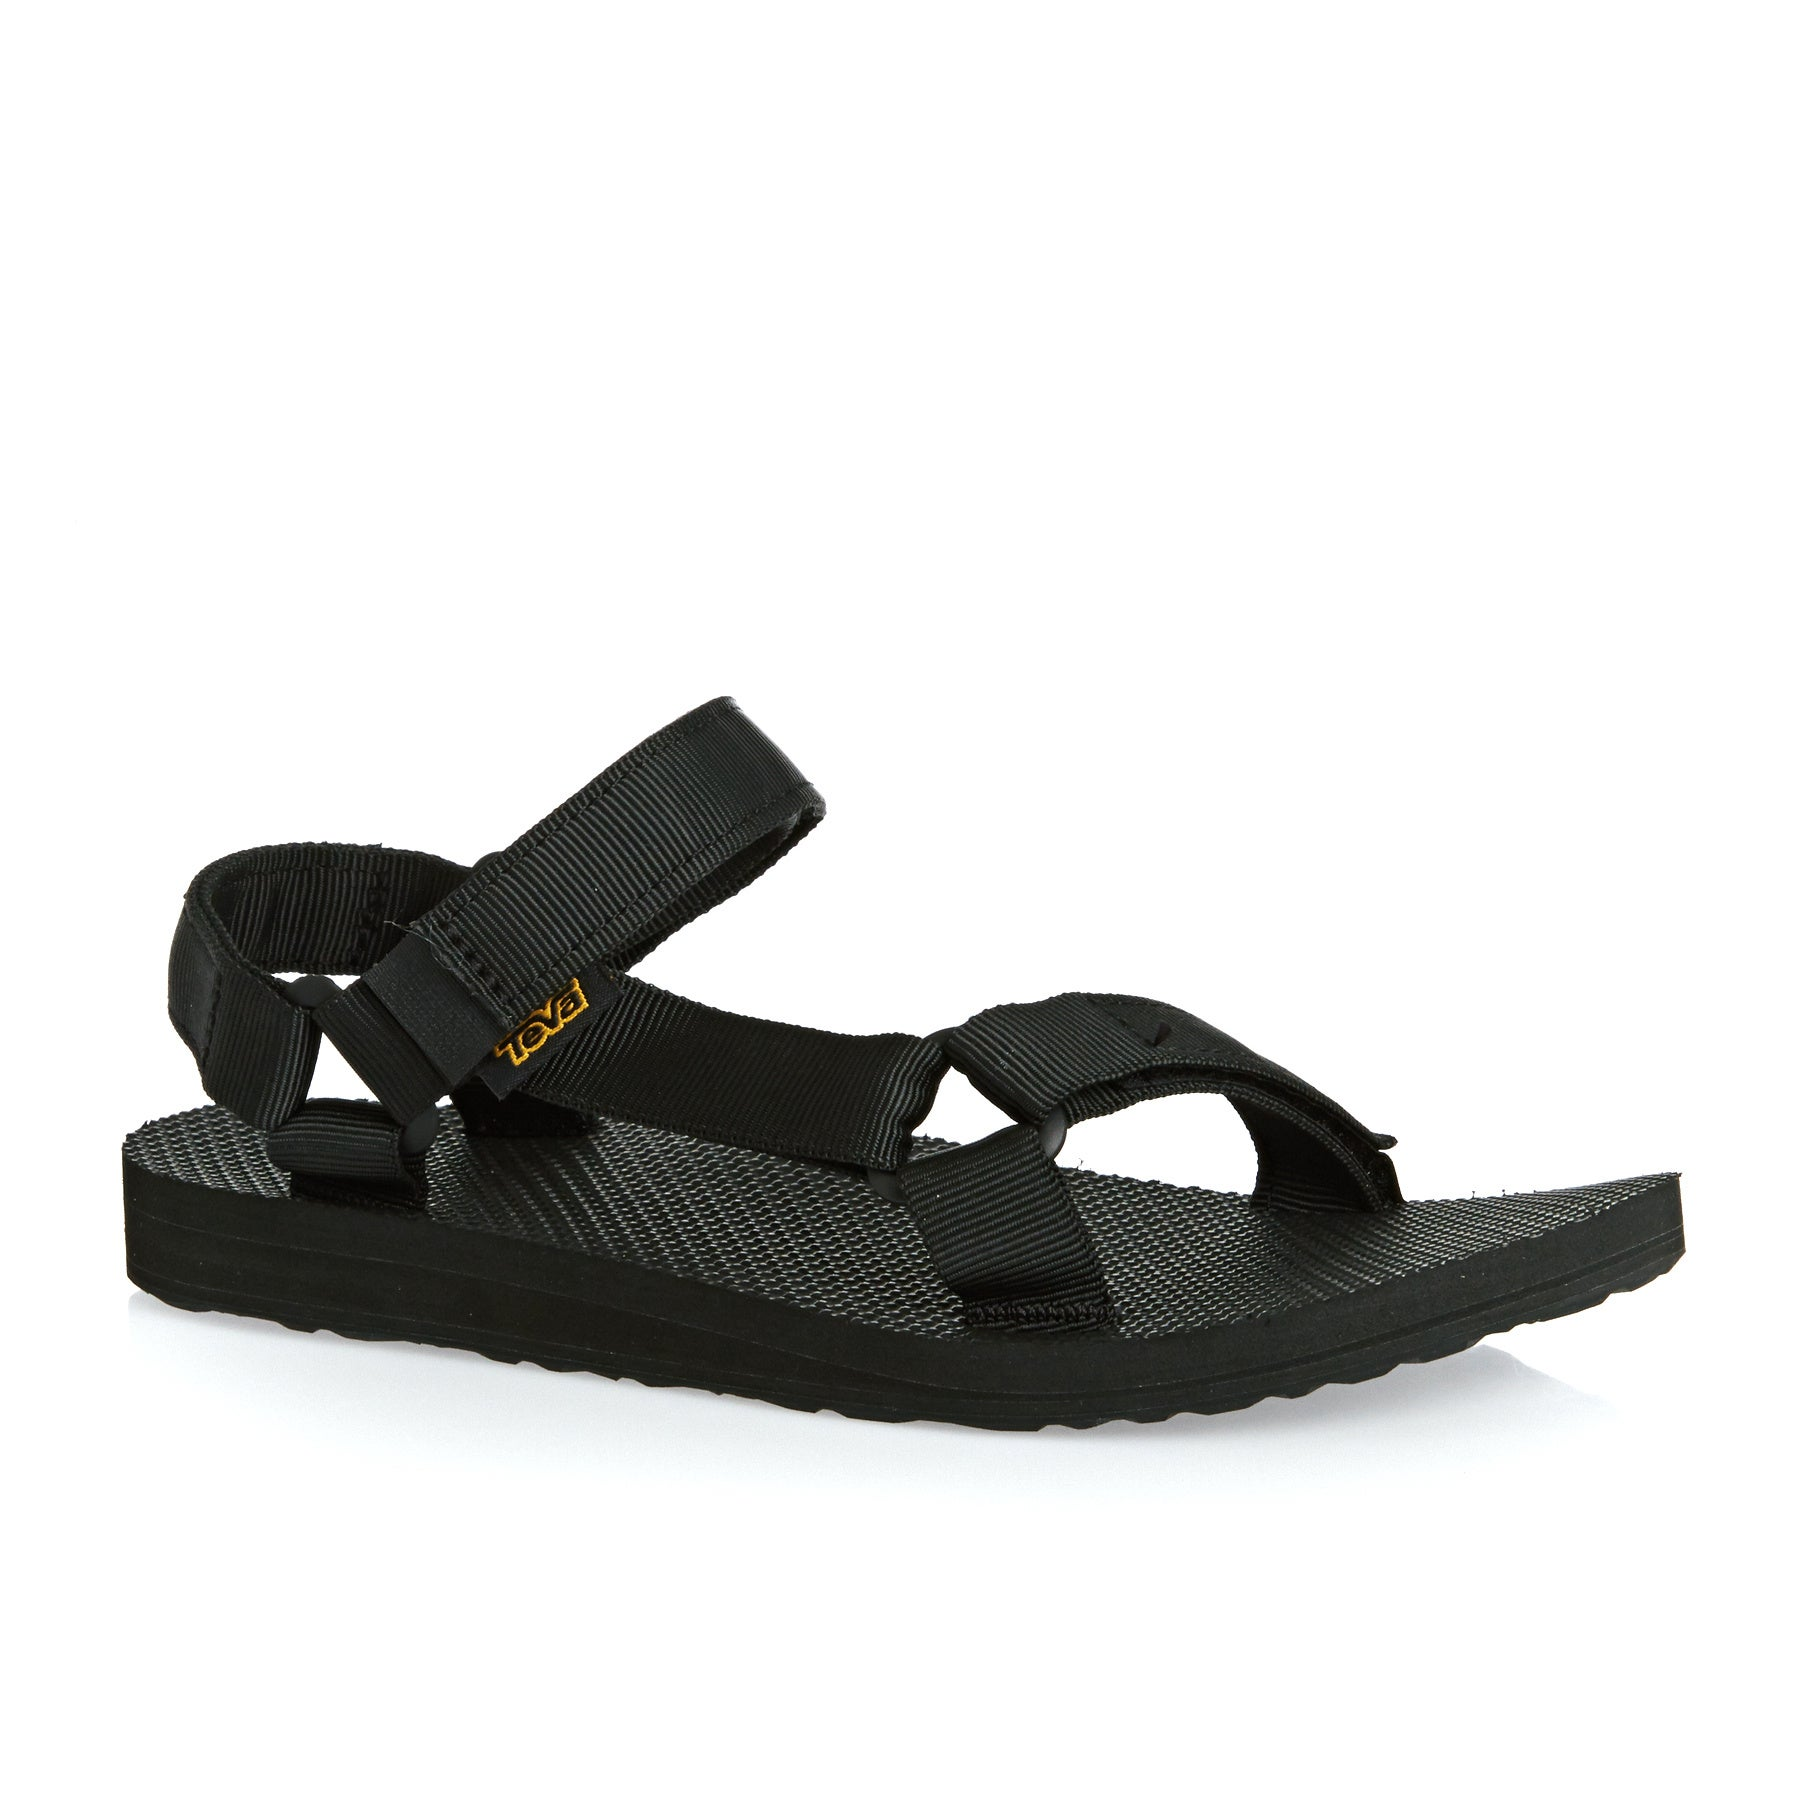 203310ef632b95 Teva Original Universal Womens Sandals available from Surfdome